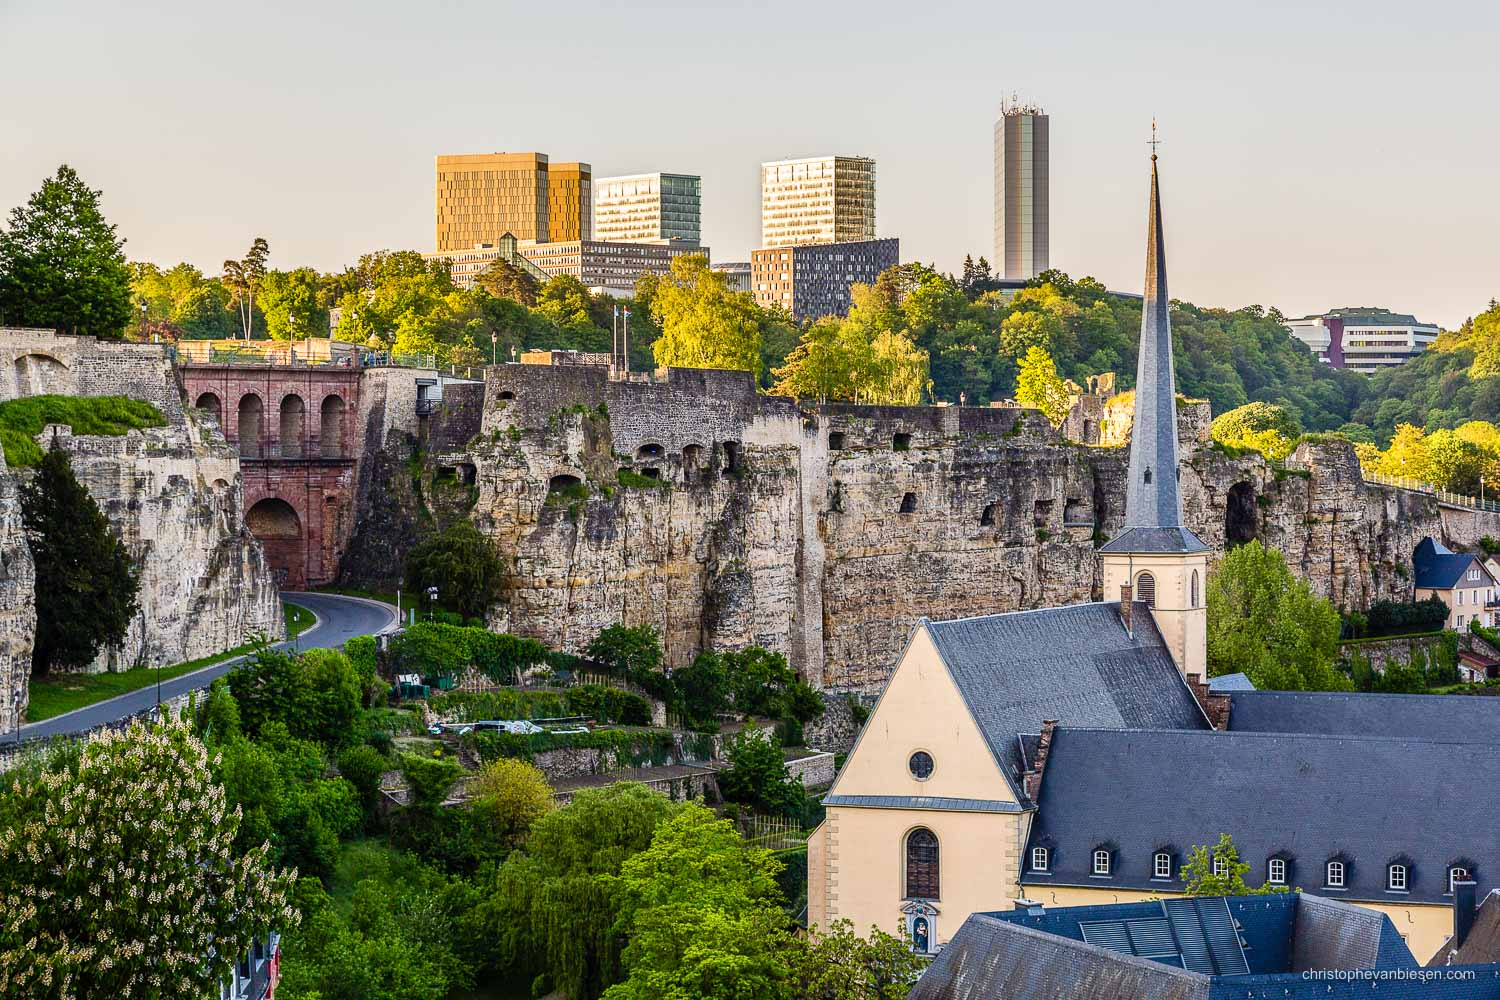 Summer in Luxembourg - Luxembourg City's Grund with the Abbey of Neumunster and the Casemates, as well as the skyscrapers of the Kirchberg in the background - Eras United